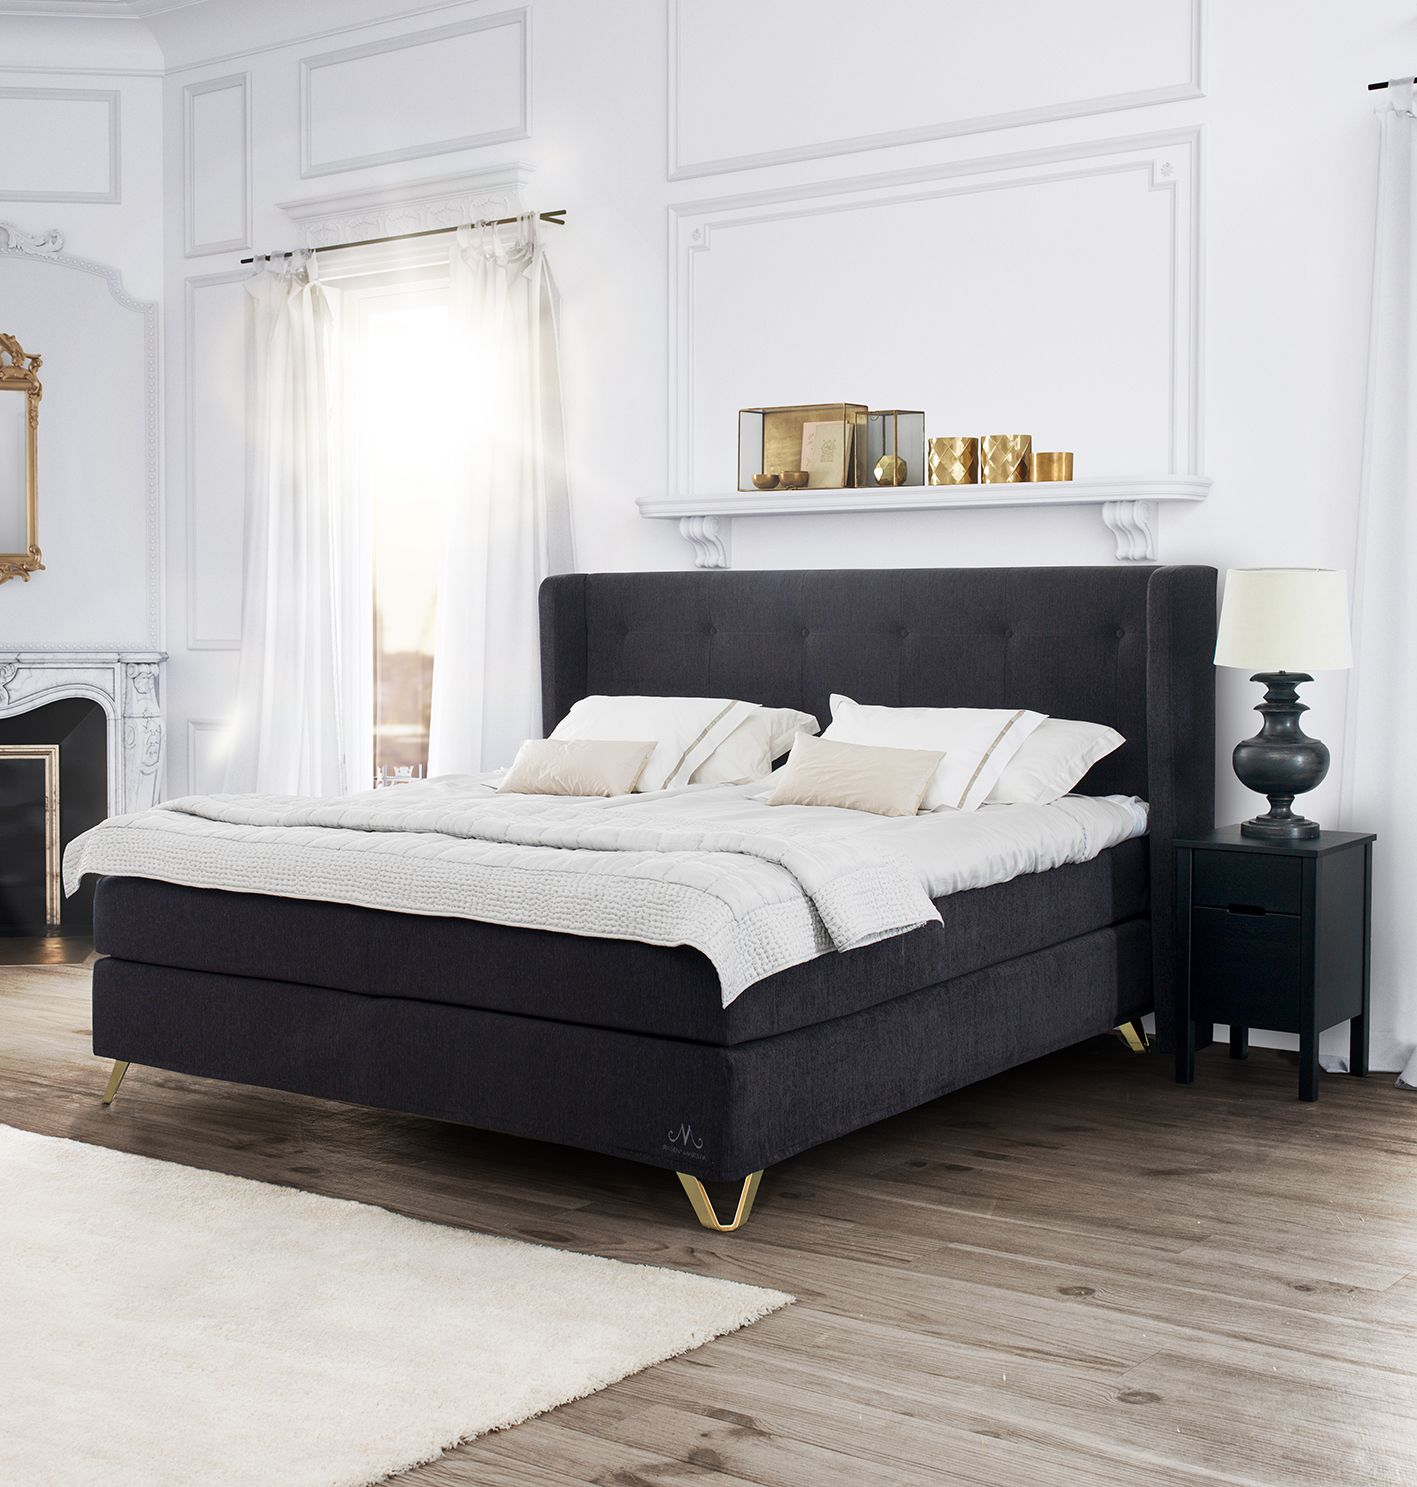 Jensen Majestic Continental bed set - pure perfection, balance and ...